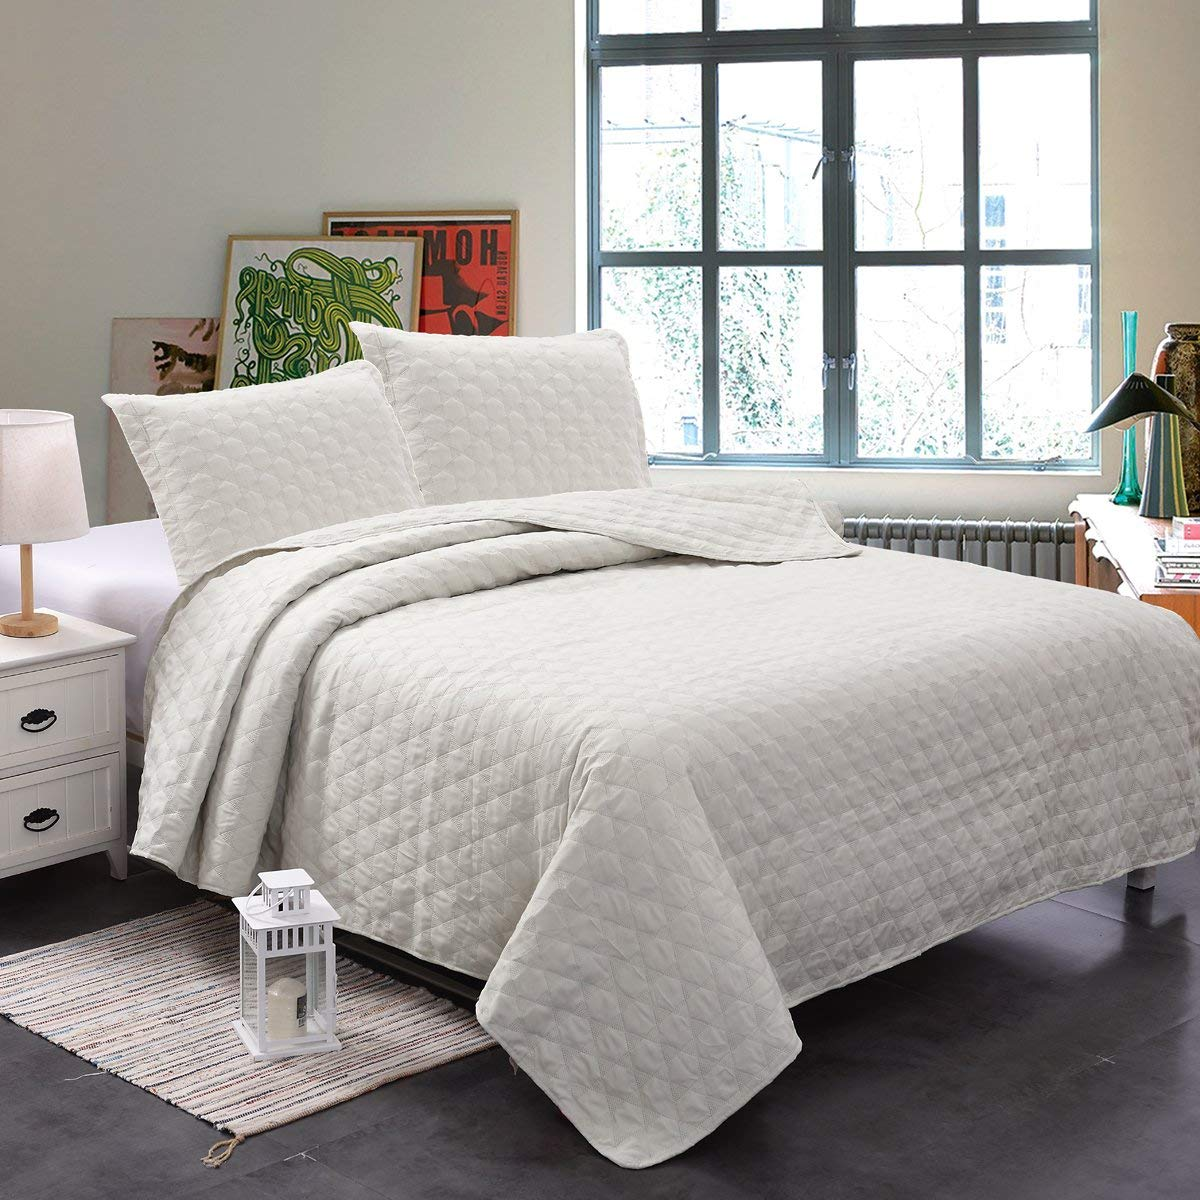 Luxury Ultrasonic Queen Quilt Set With Shams 3 Pieces